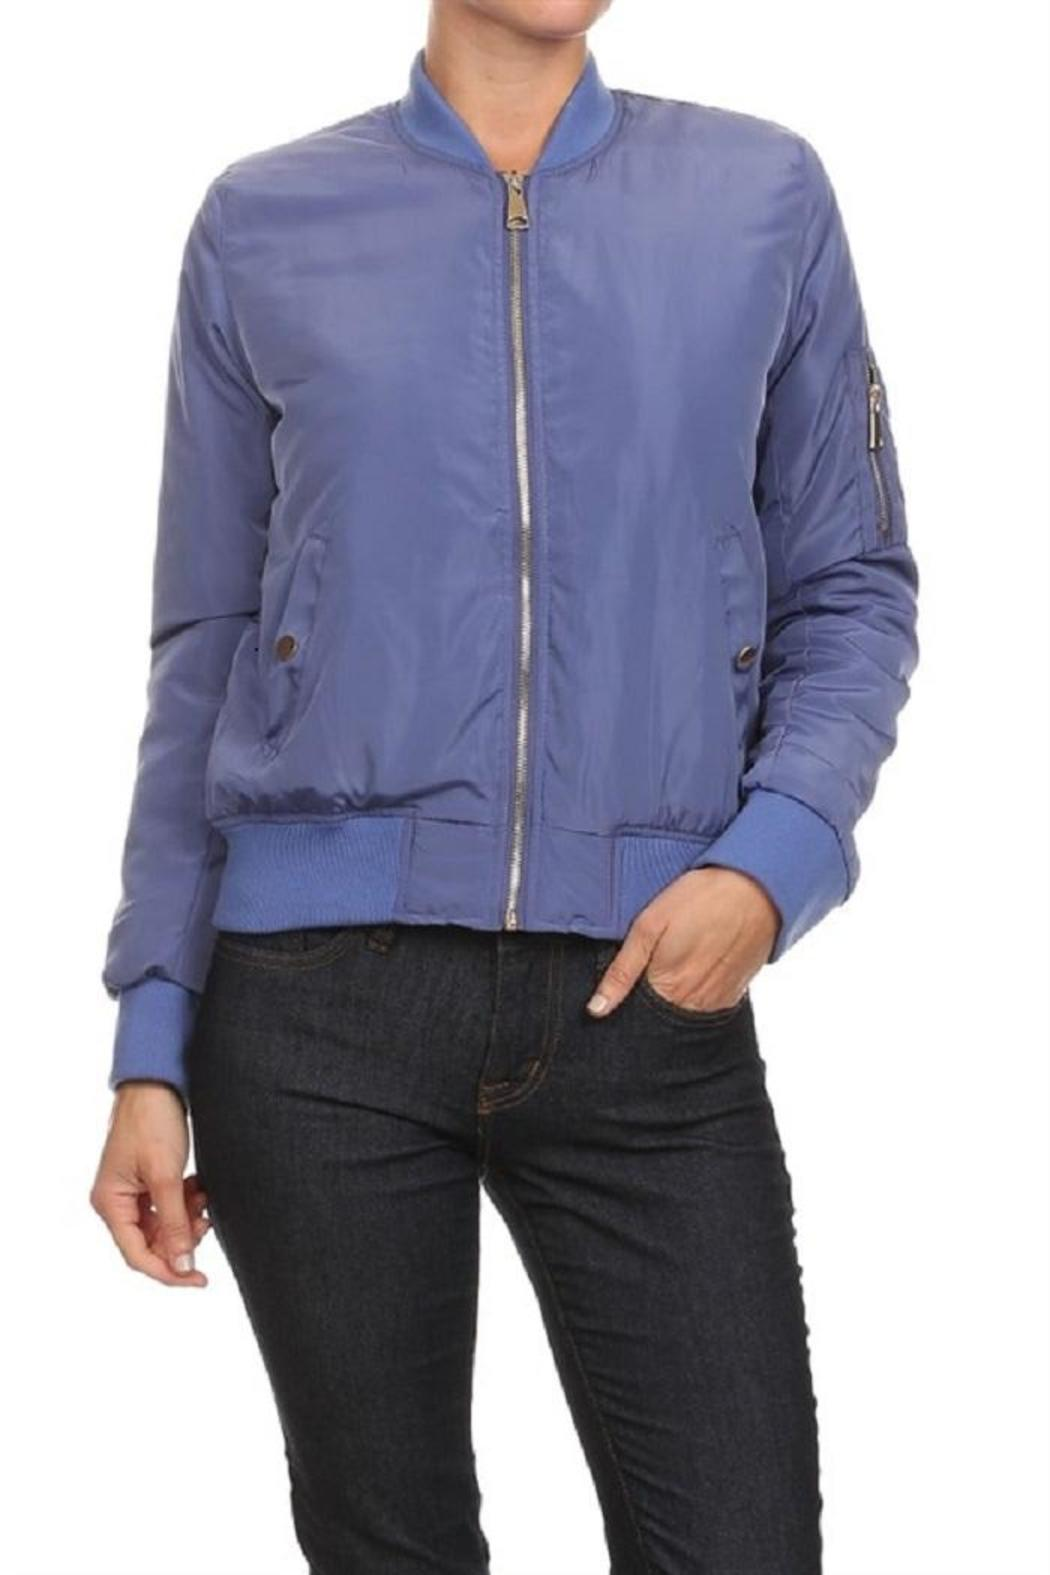 689e70931a 36 POINT 5 Kimk Bomber Jacket from Missouri by Domi More — Shoptiques